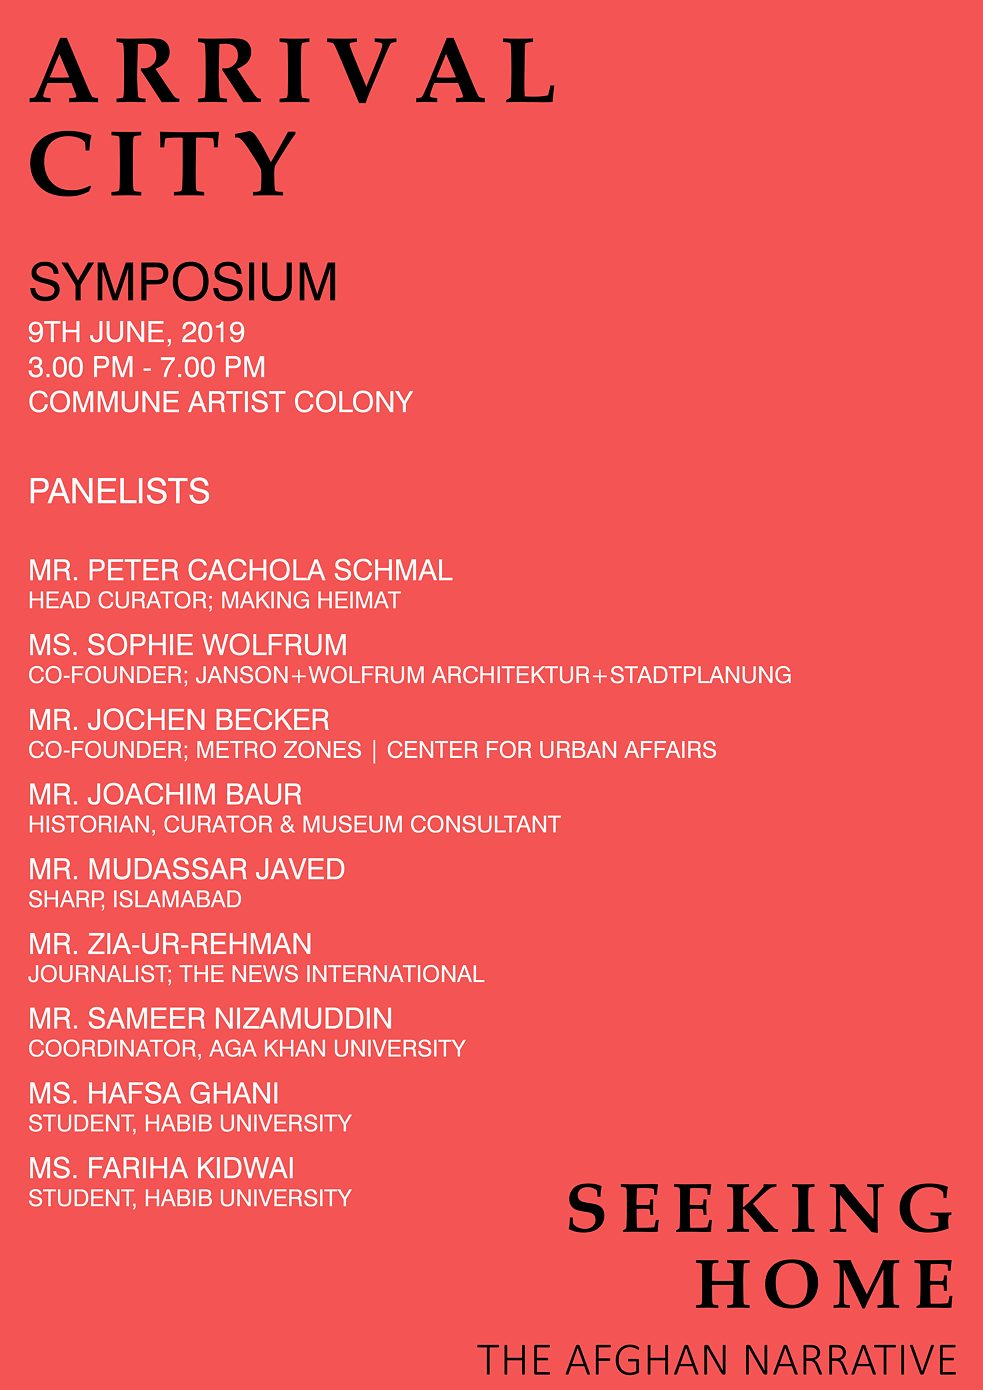 Exhibition and Symposium